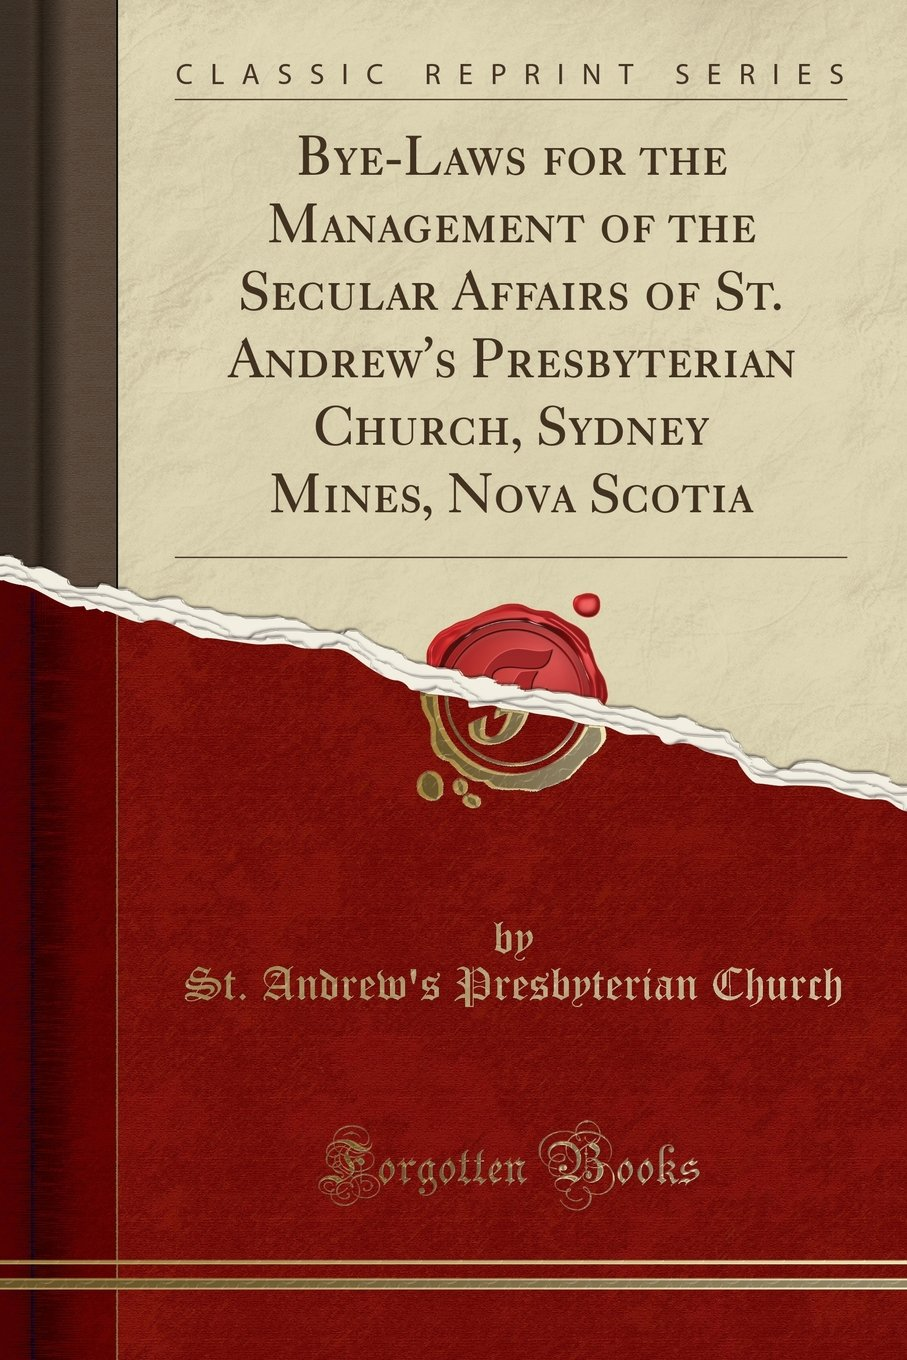 Bye-Laws for the Management of the Secular Affairs of St. Andrew's Presbyterian Church, Sydney Mines, Nova Scotia (Classic Reprint) ebook